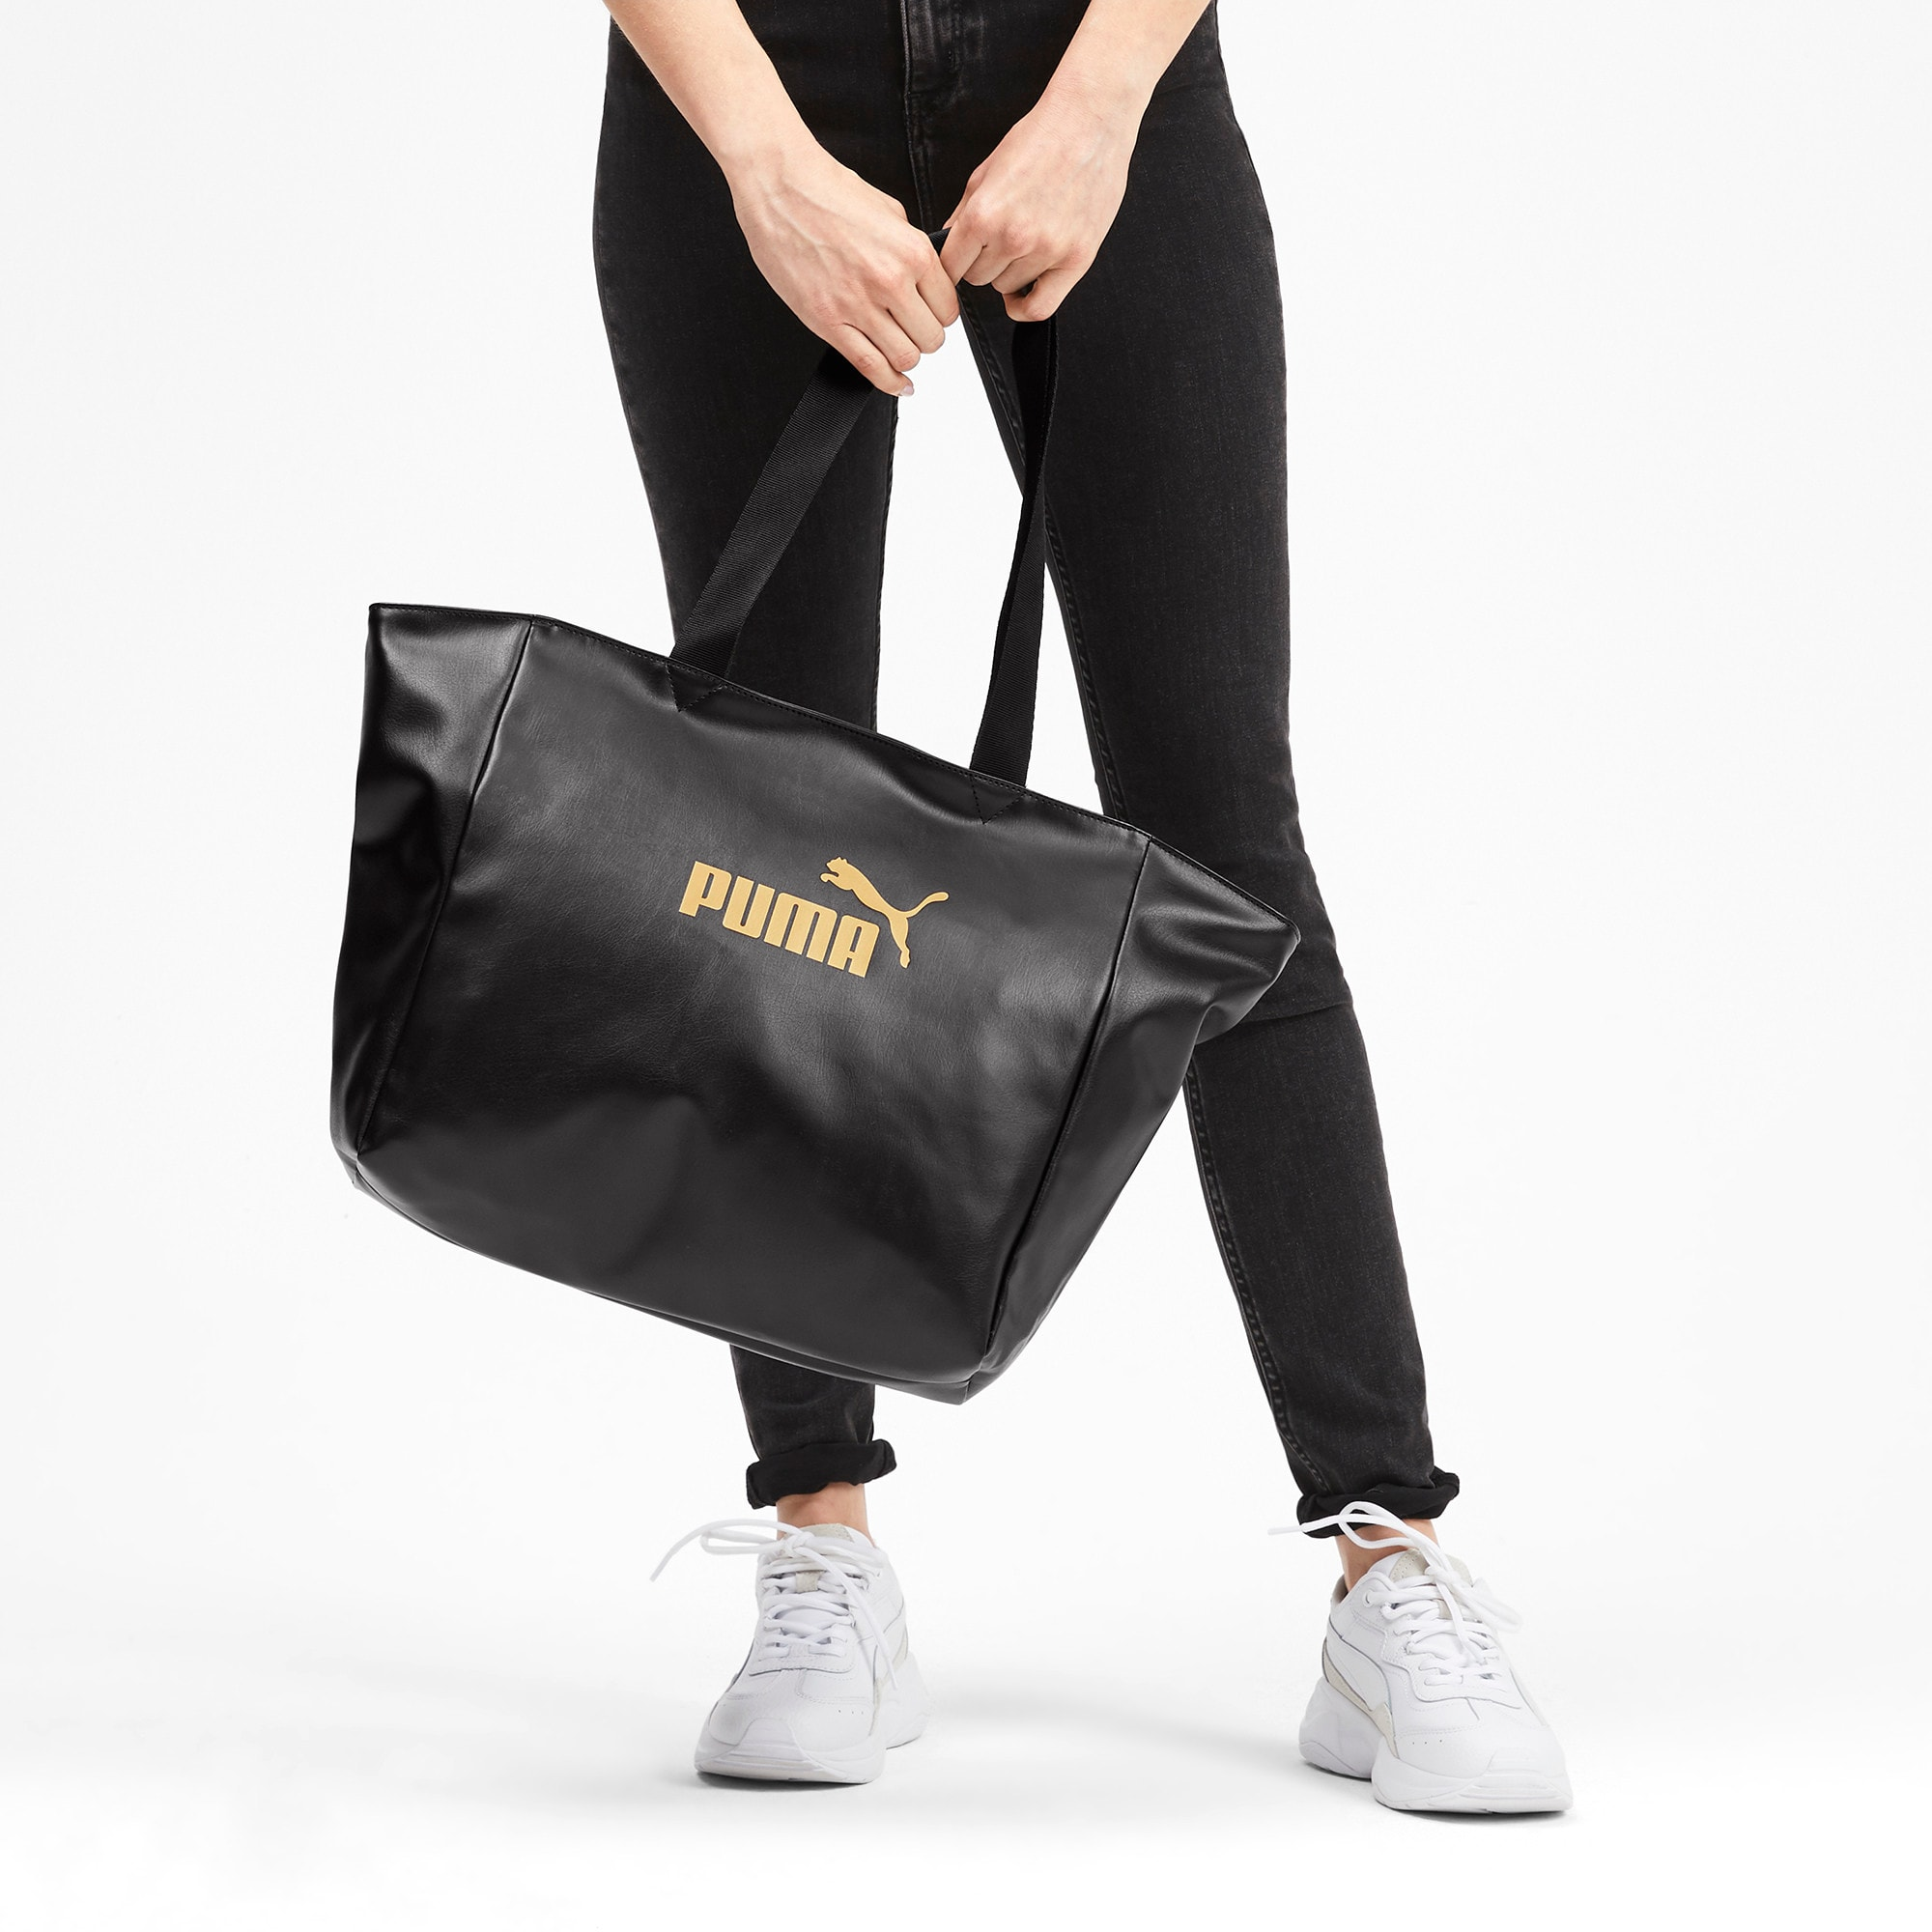 Thumbnail 2 of Large Women's Shopper, Puma Black-Gold, medium-IND